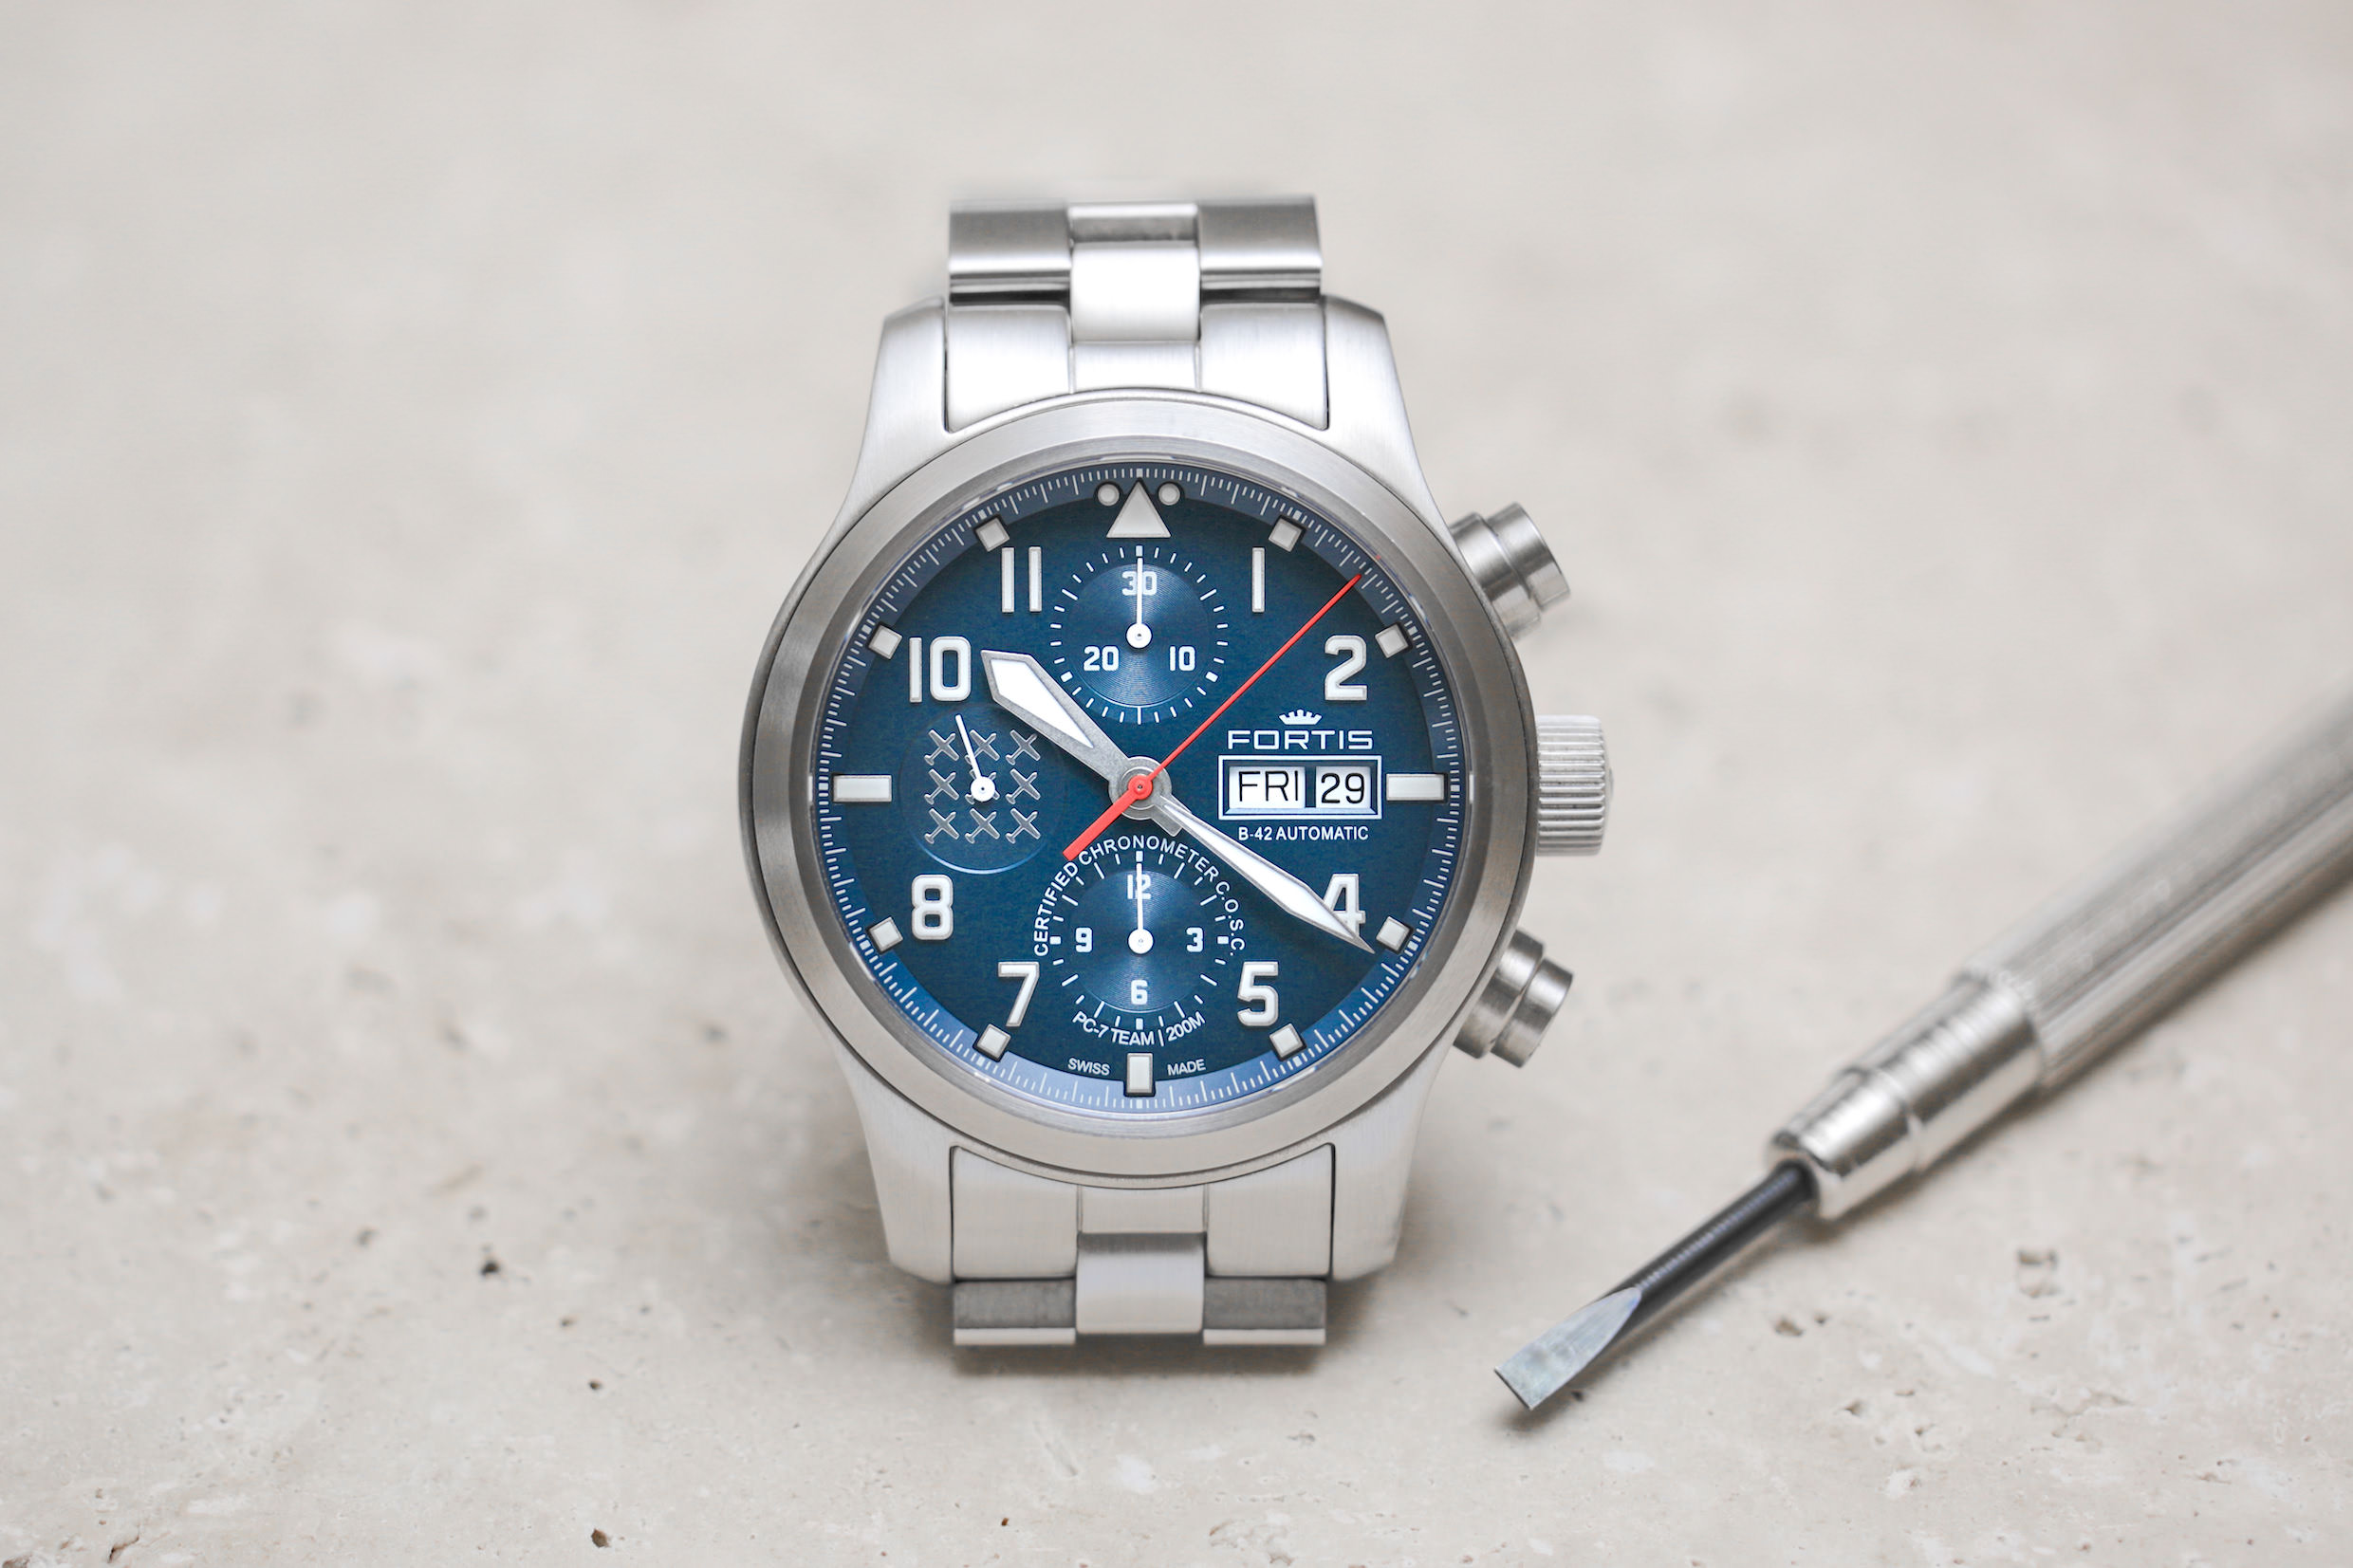 Die Fortis PC7 Team Edition Chronograph